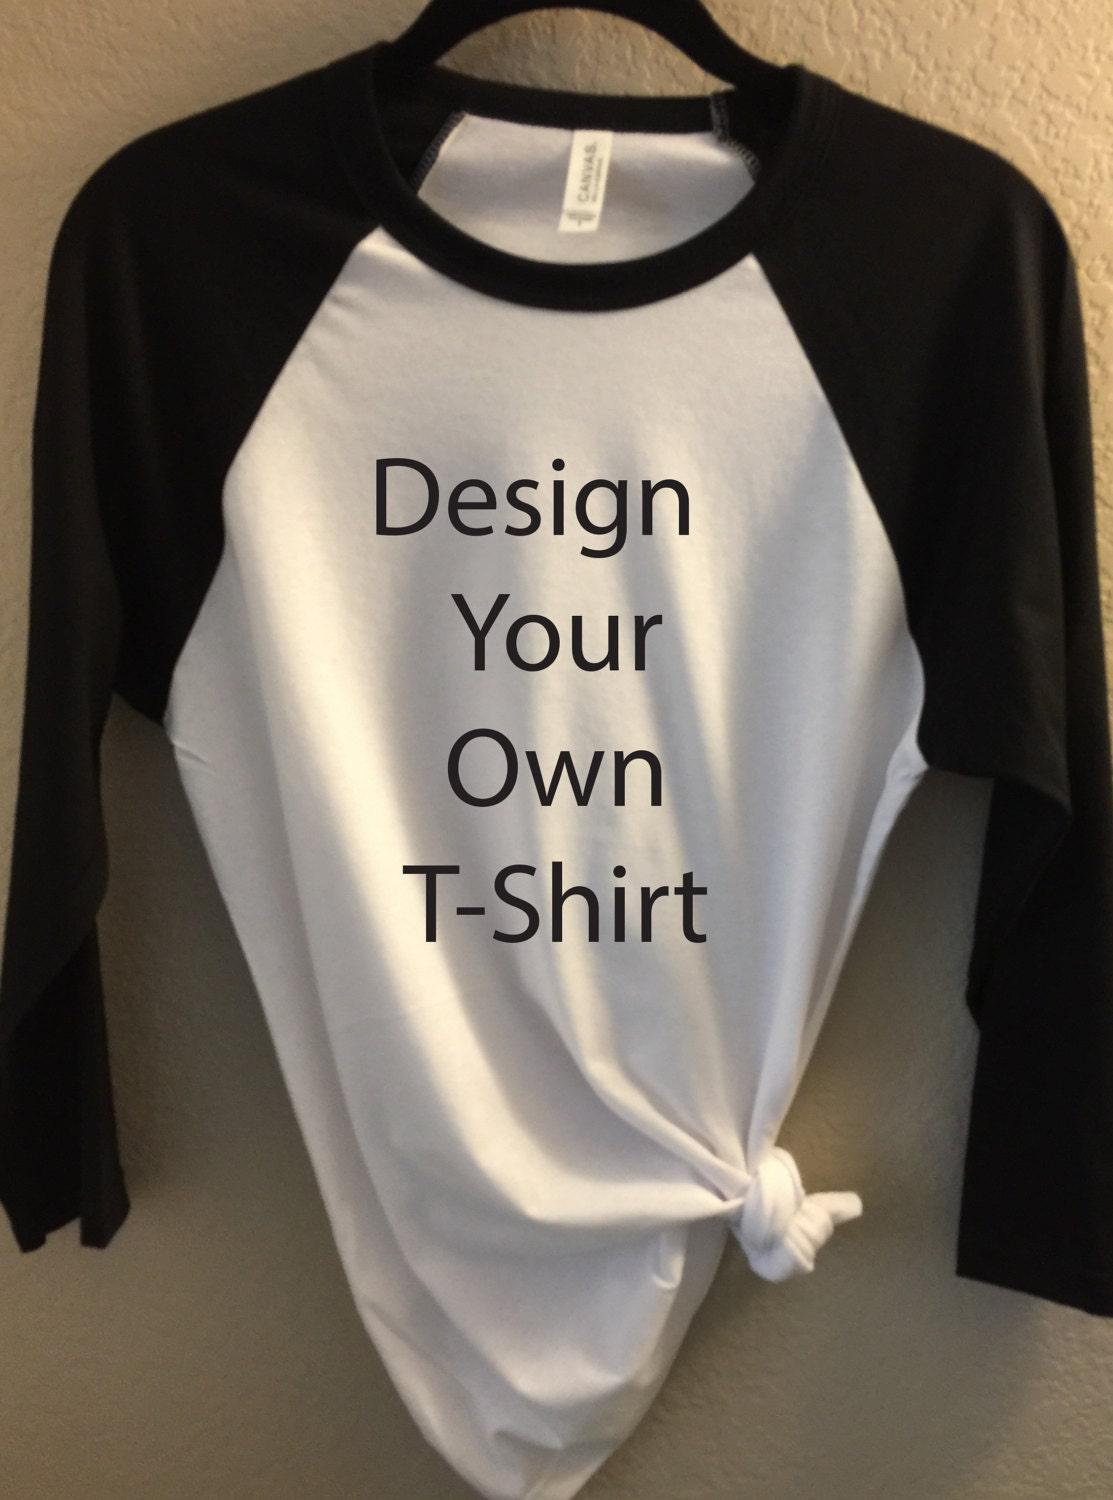 Create Your Own Gift Tags Cards And More Using Avery: Design Your Own T-Shirt Bella Canvas Unisex 3/4 Length